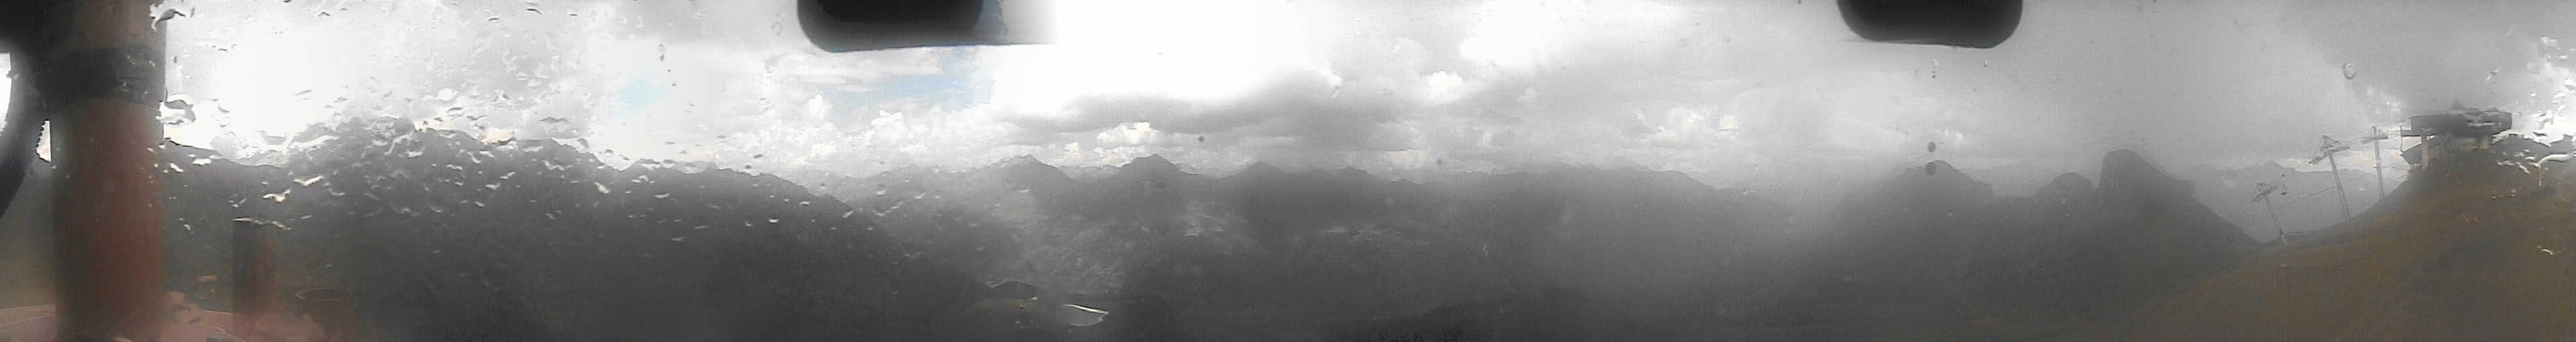 Webcam 3 - Serre-Chevalier